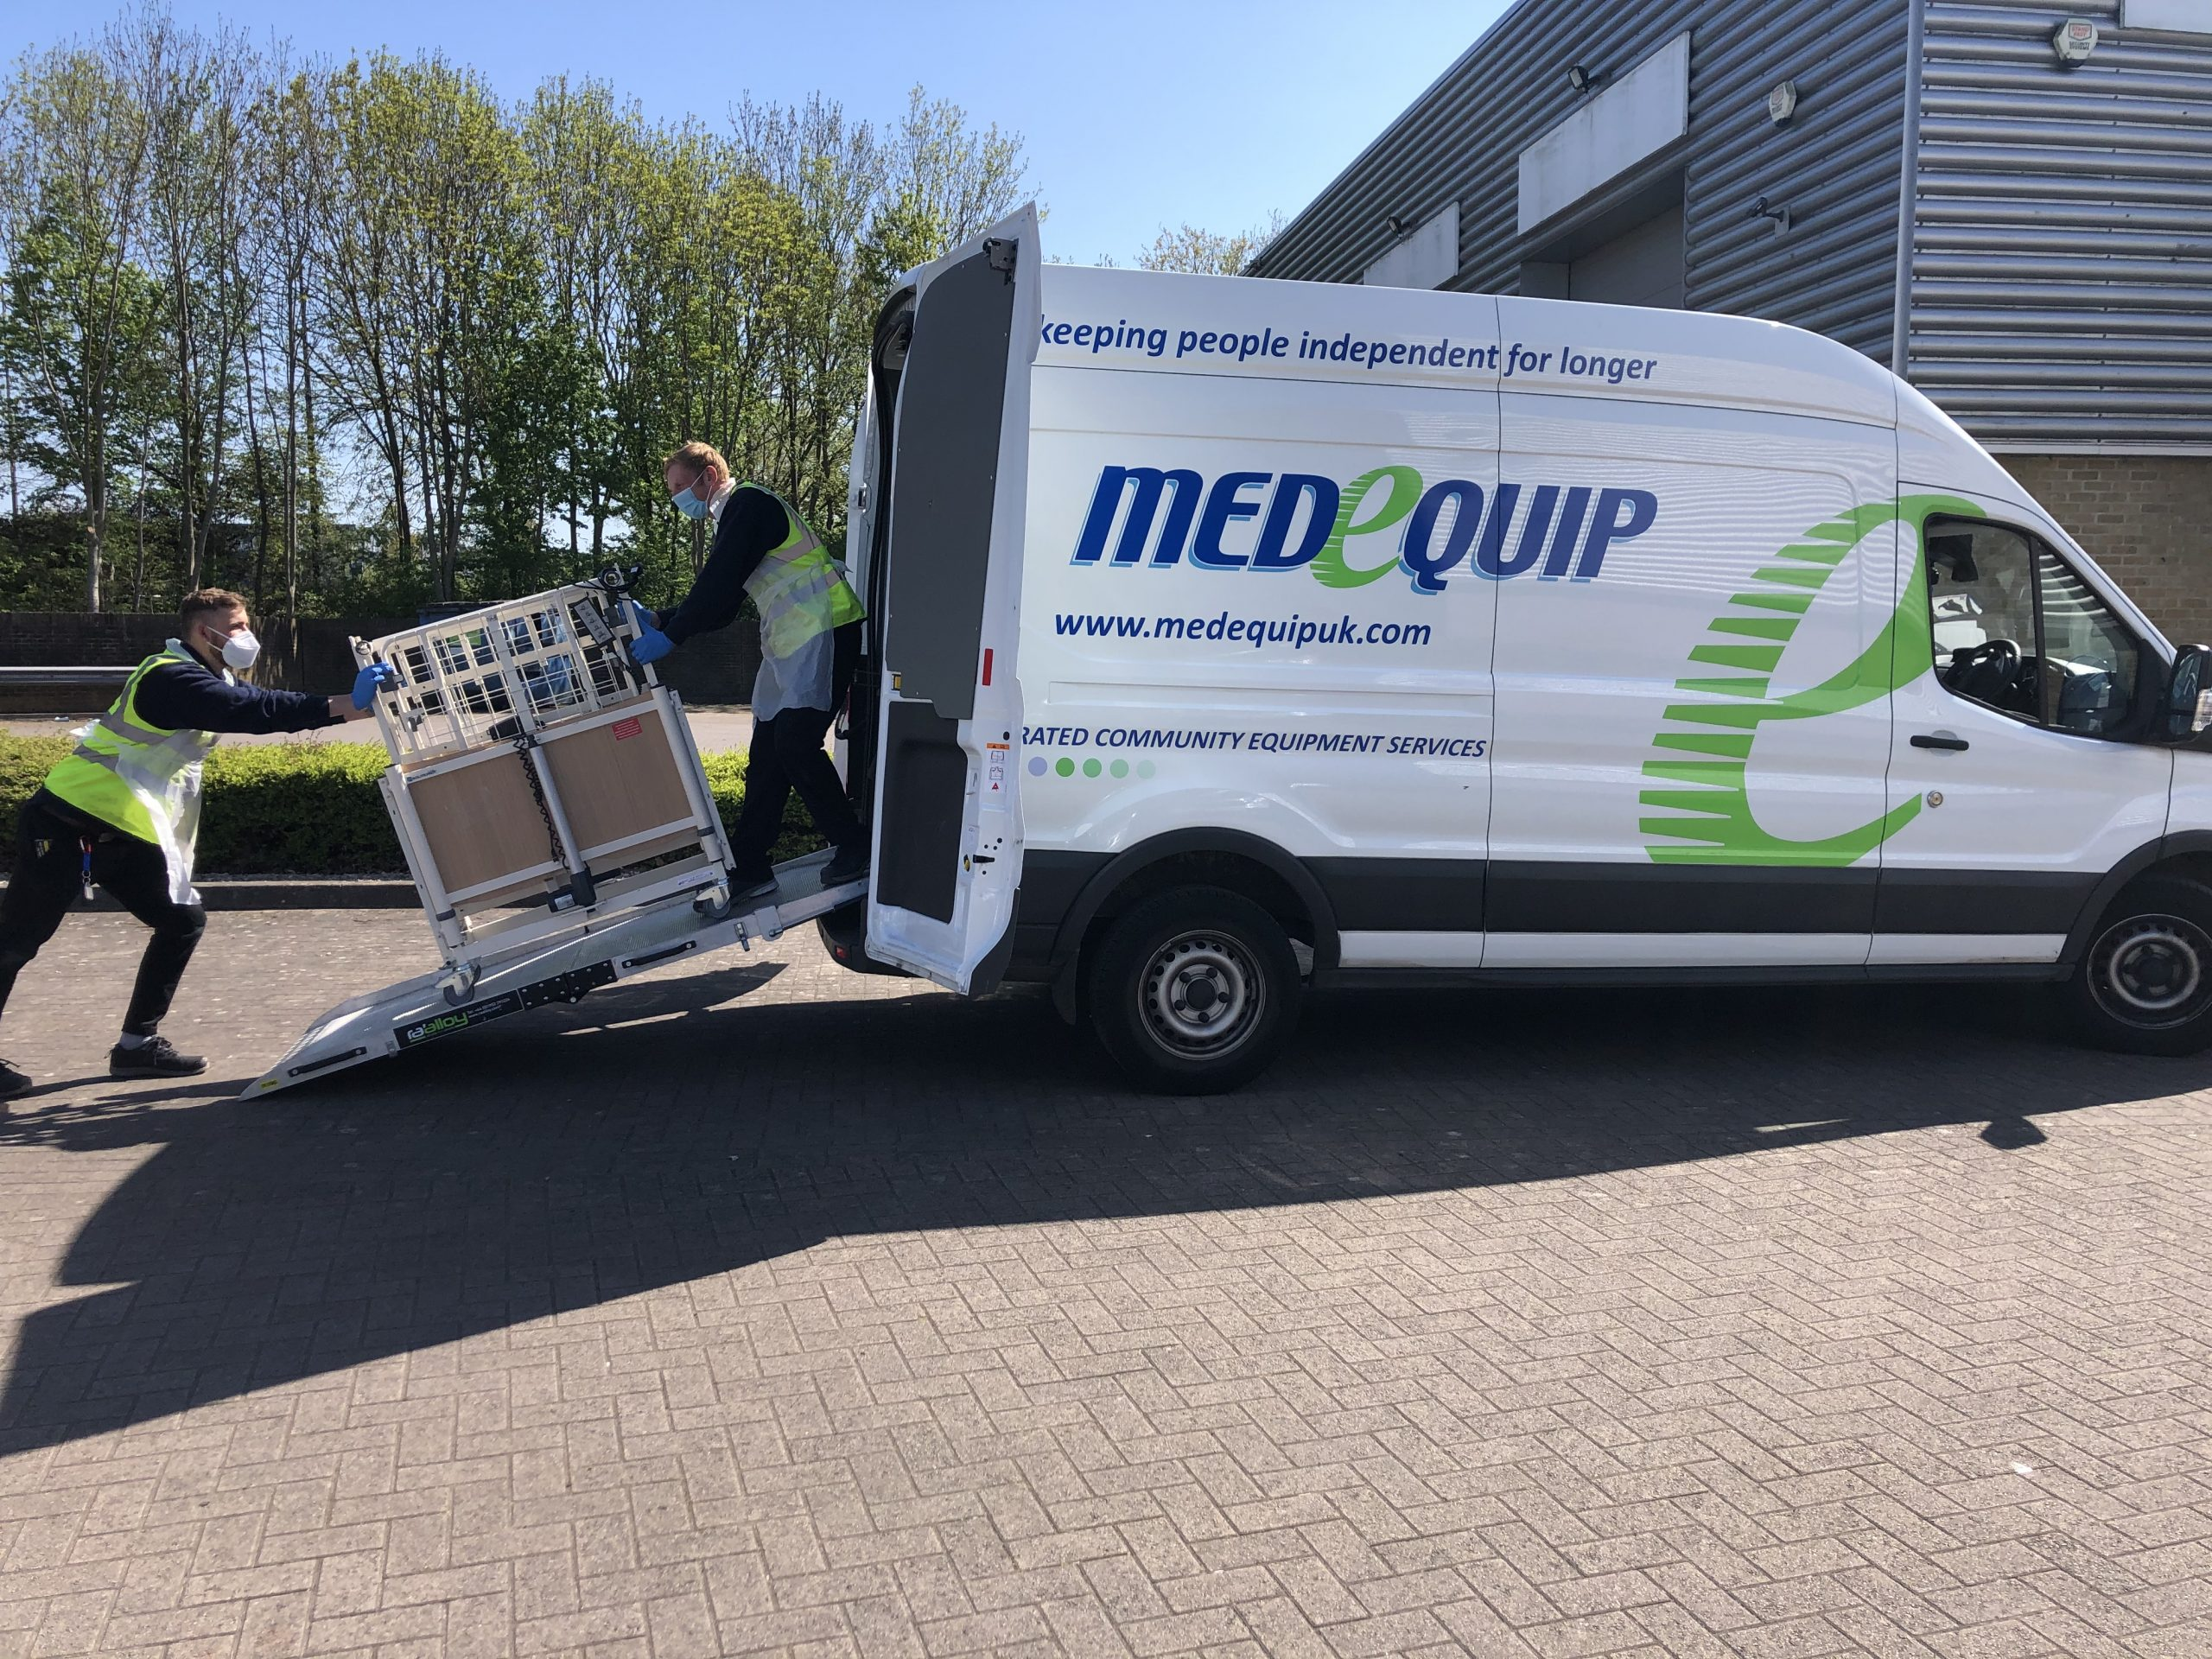 Medway Council Selects Medequip for Community Equipment Services